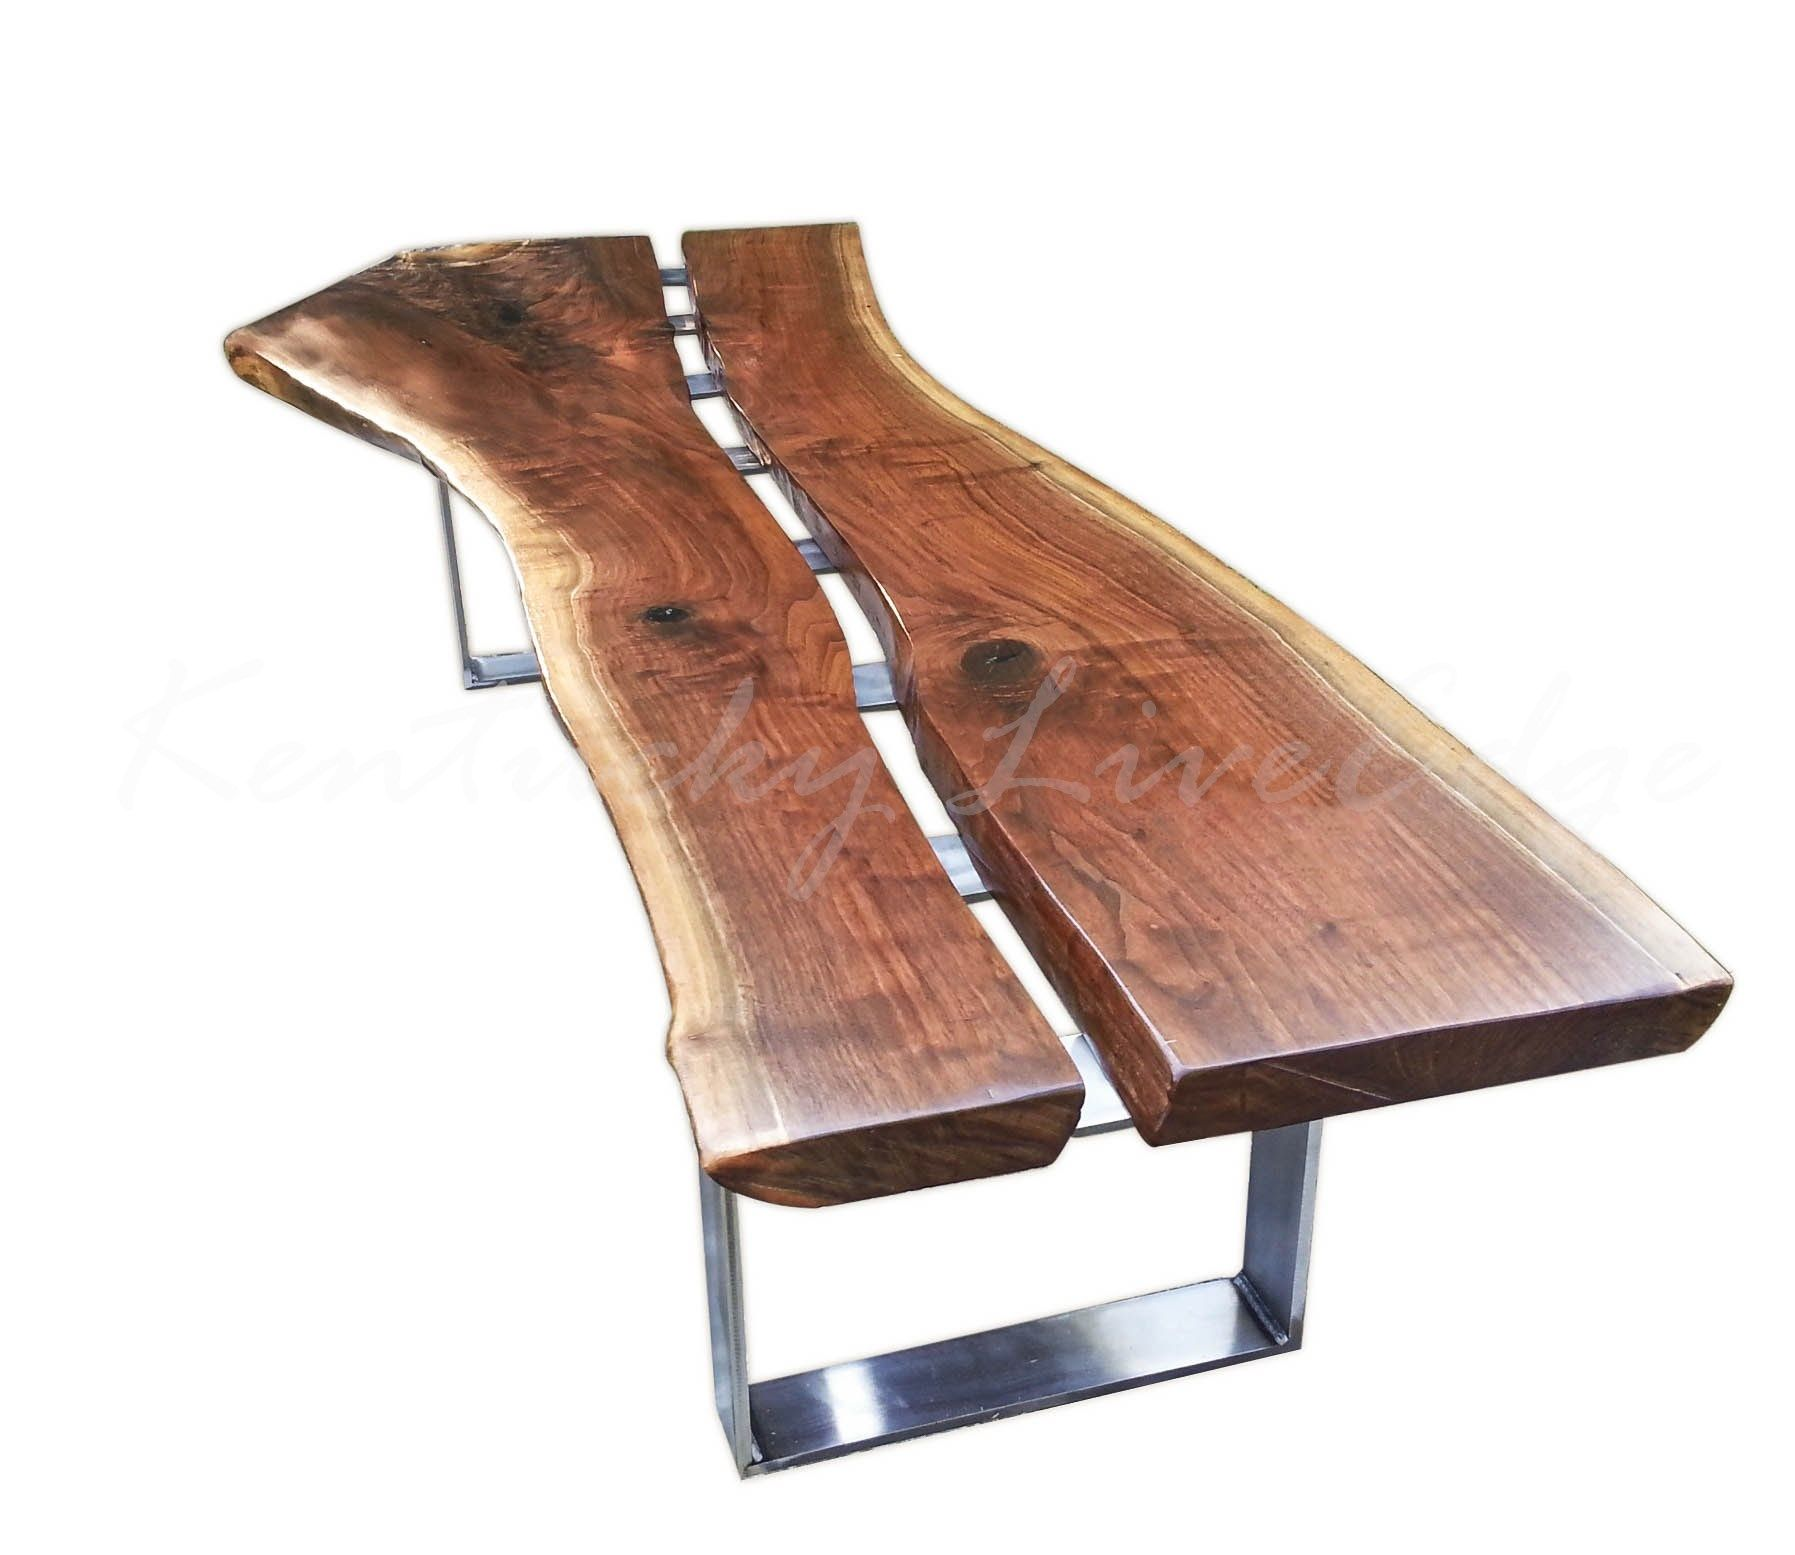 Industrial Unique Metal Designer Coffee Table: Custom Modern Live Edge Walnut And Steel Coffee Table